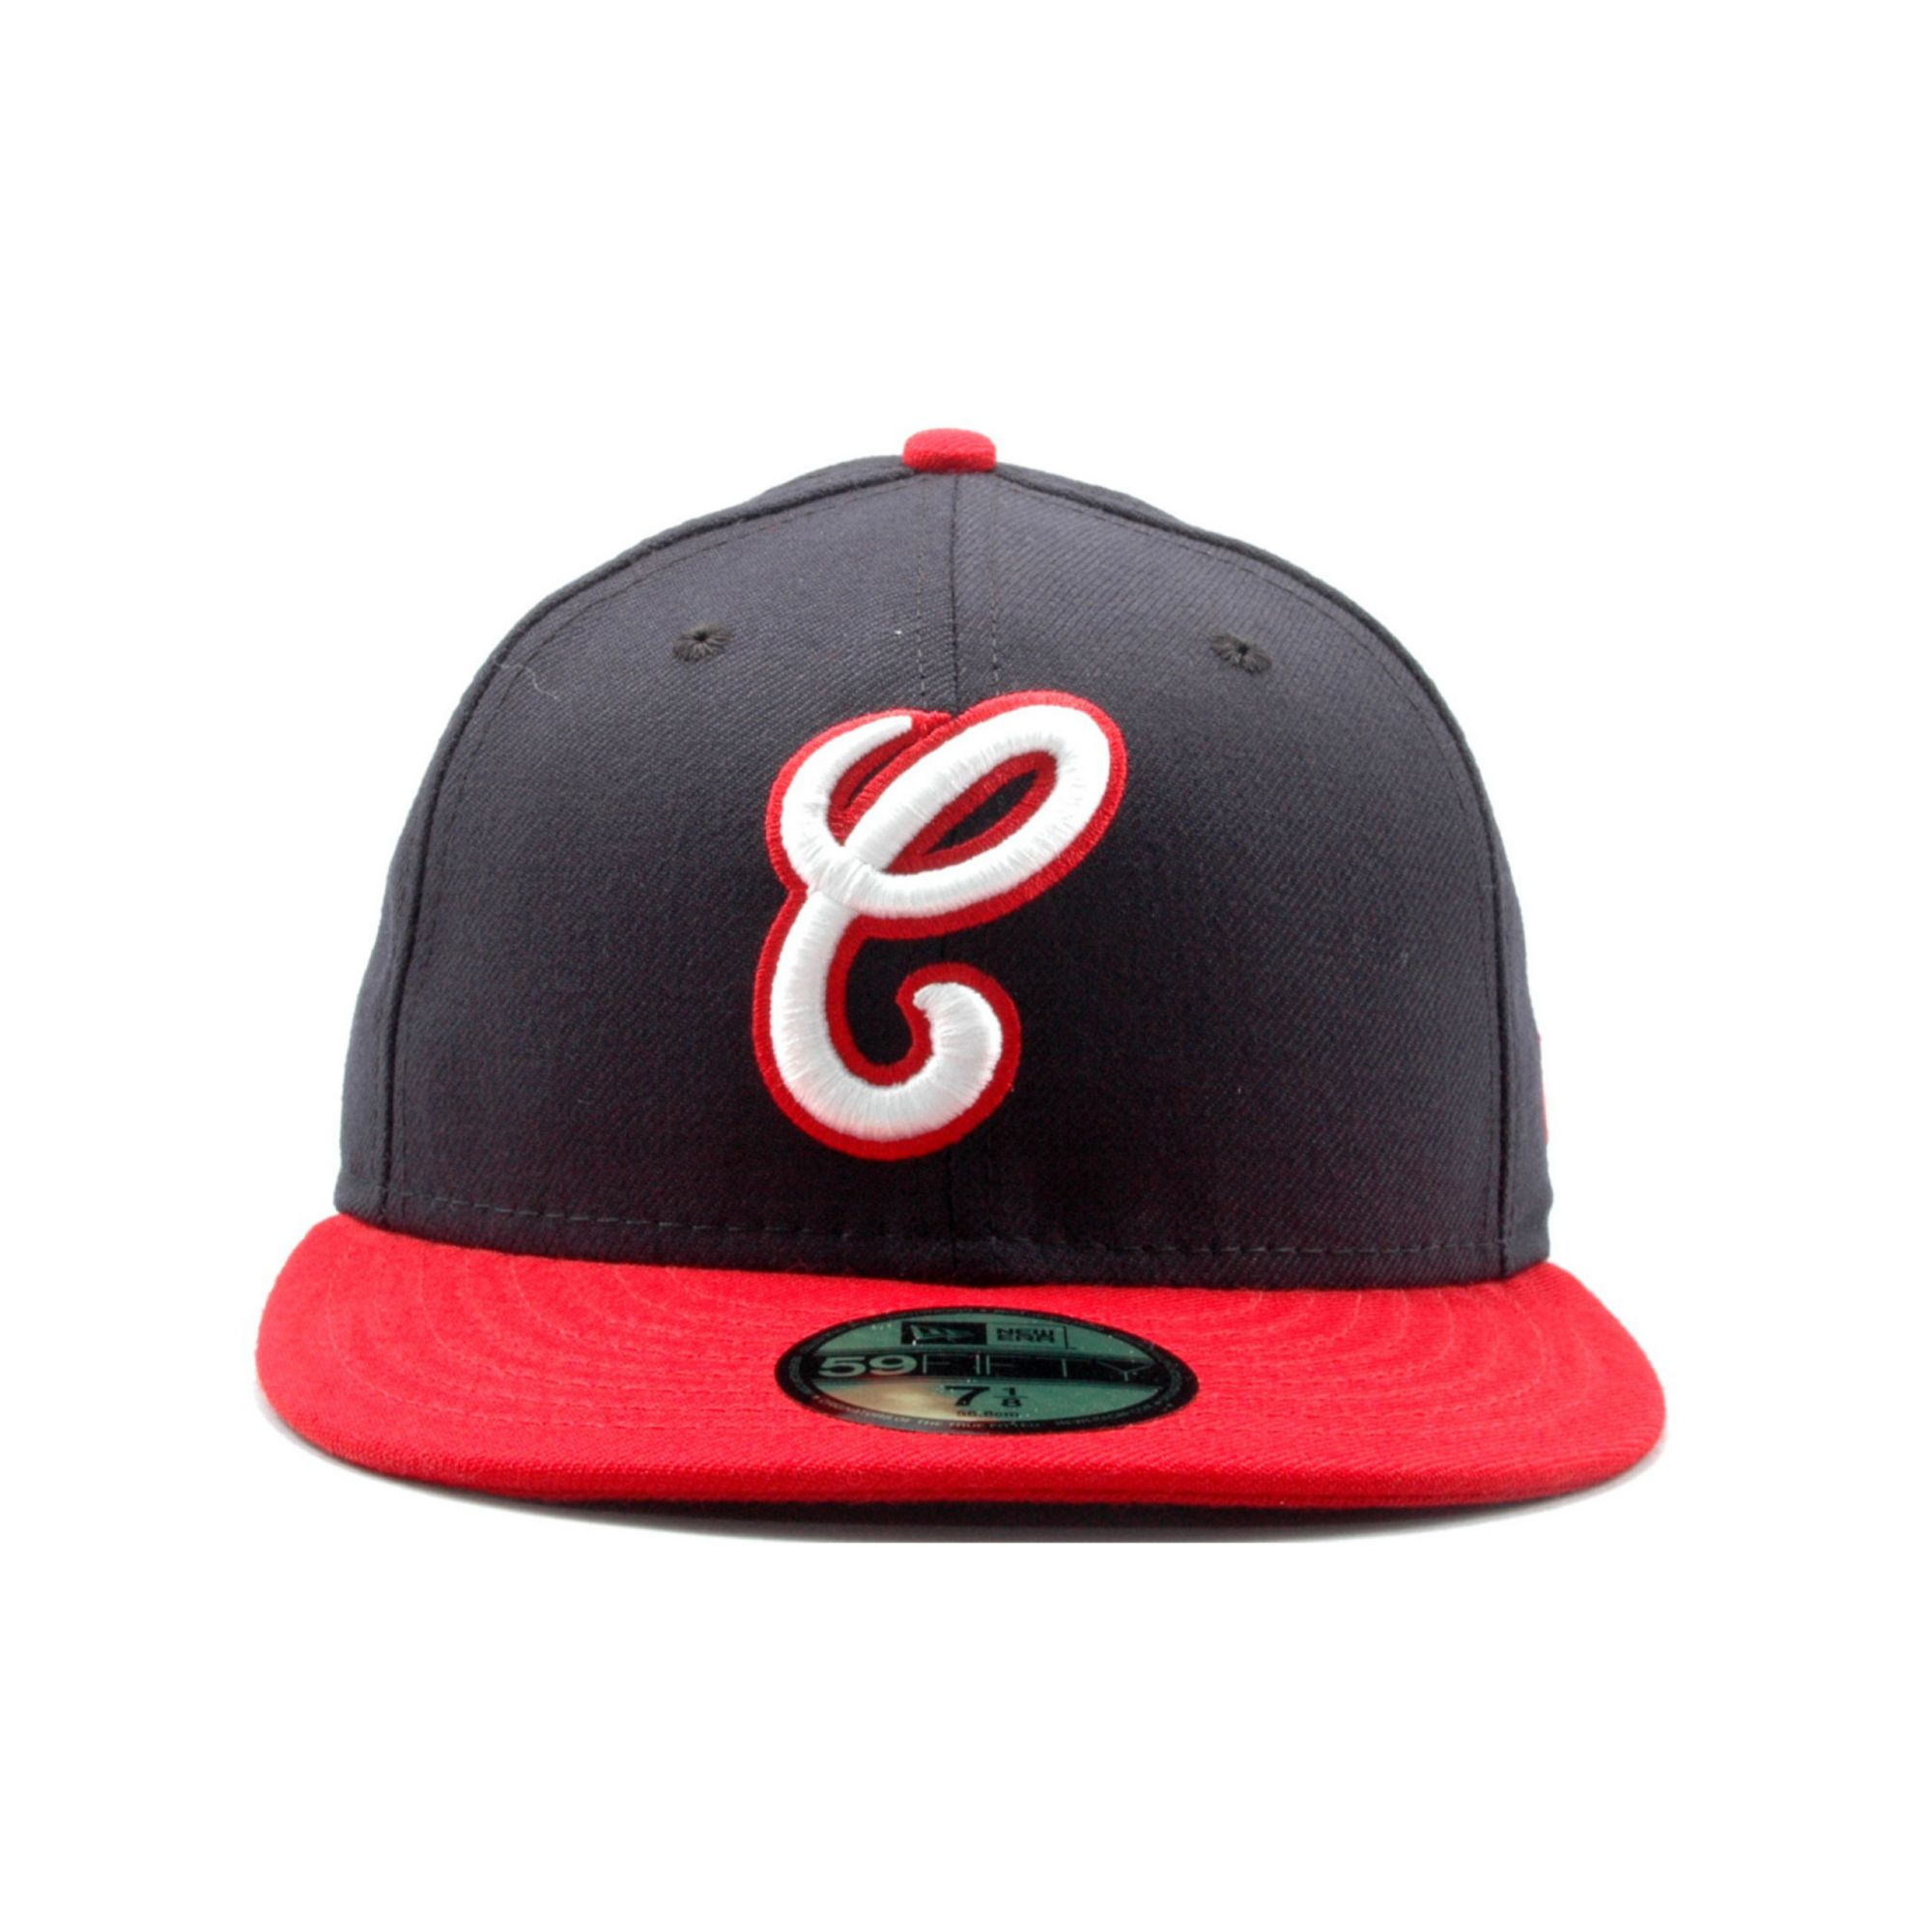 brand new df57a 577f7 ... usa lyst ktz chicago white sox cooperstown 59fifty cap in red for men  5aa25 c009b